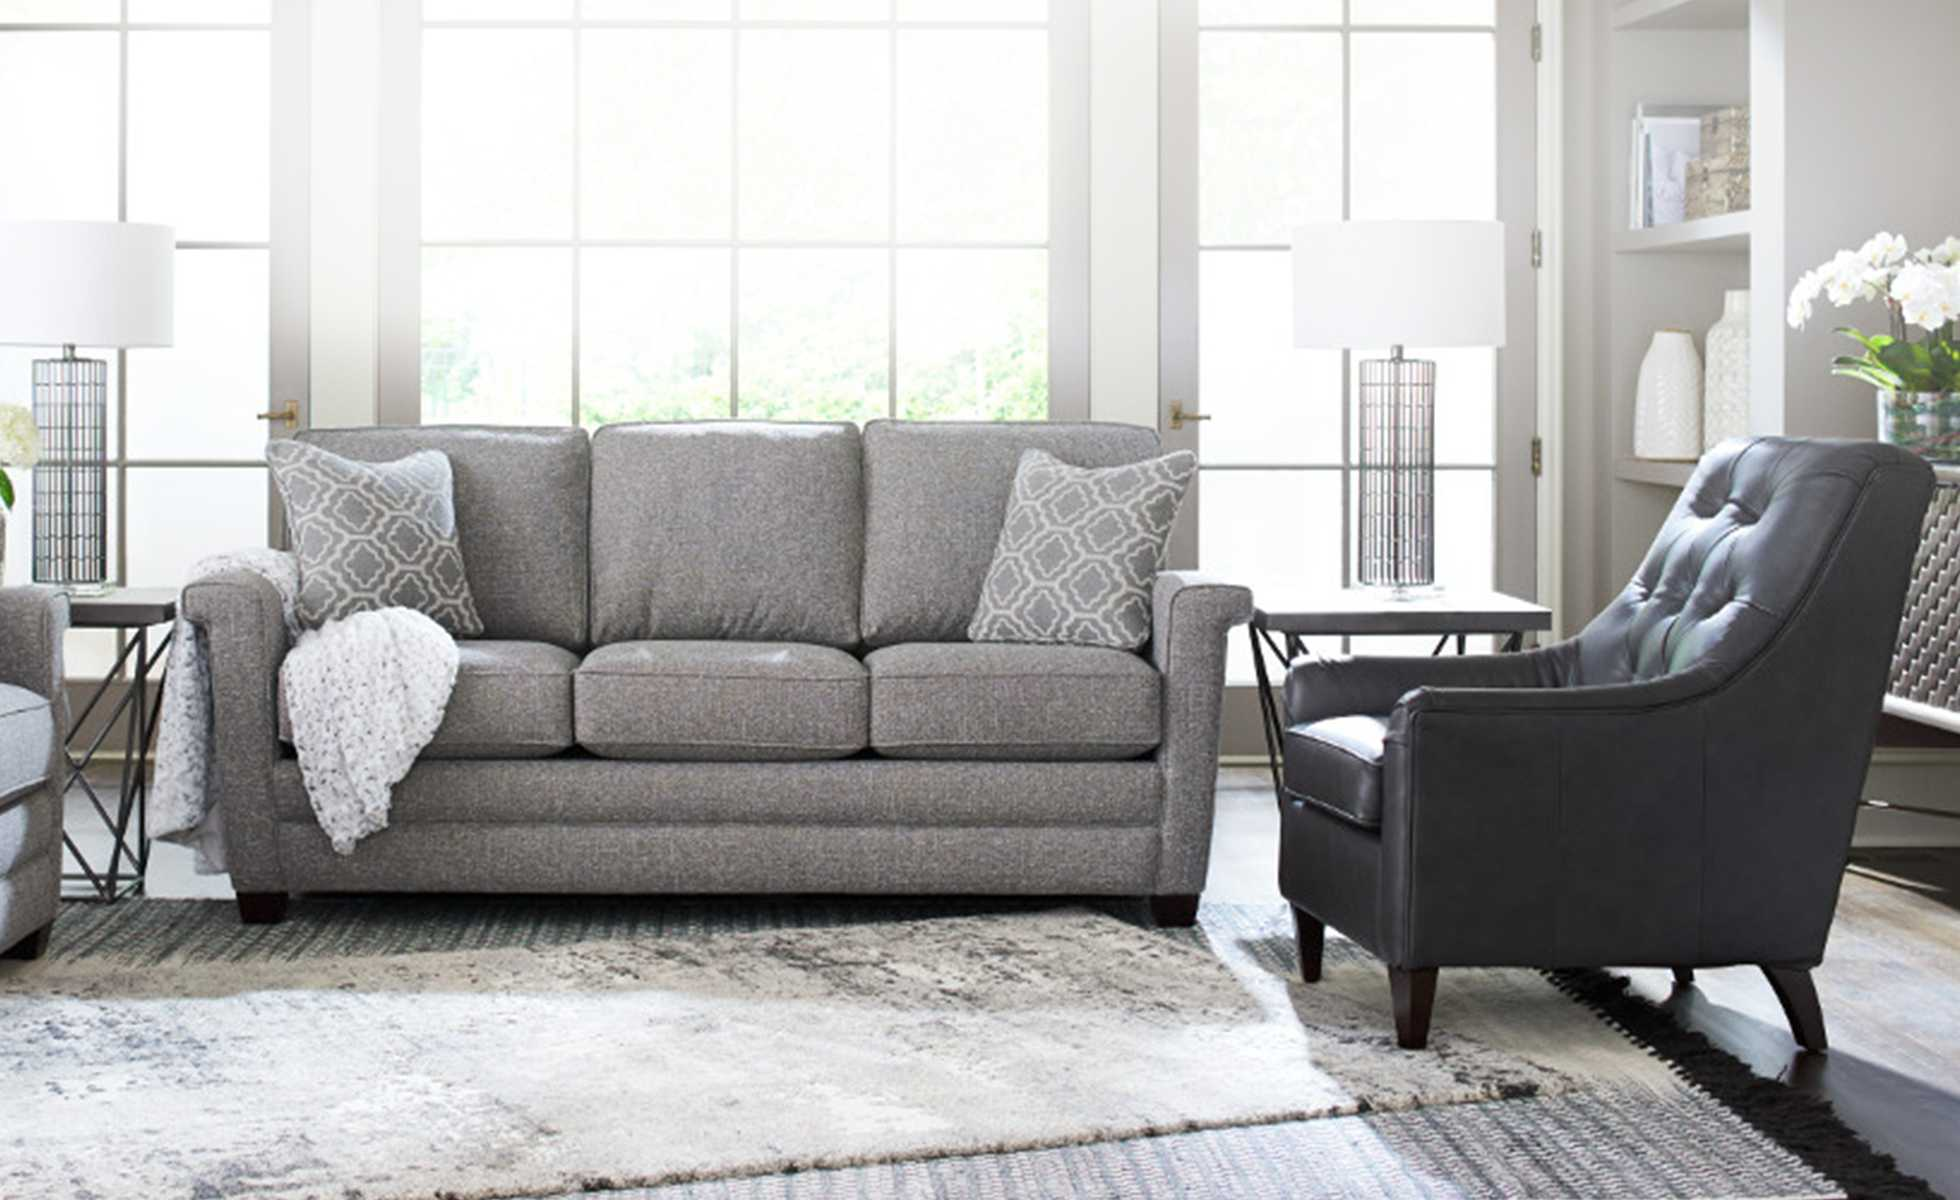 Living room with Bexley Sofa, Logan Circle Ottoman, and Marietta Chair